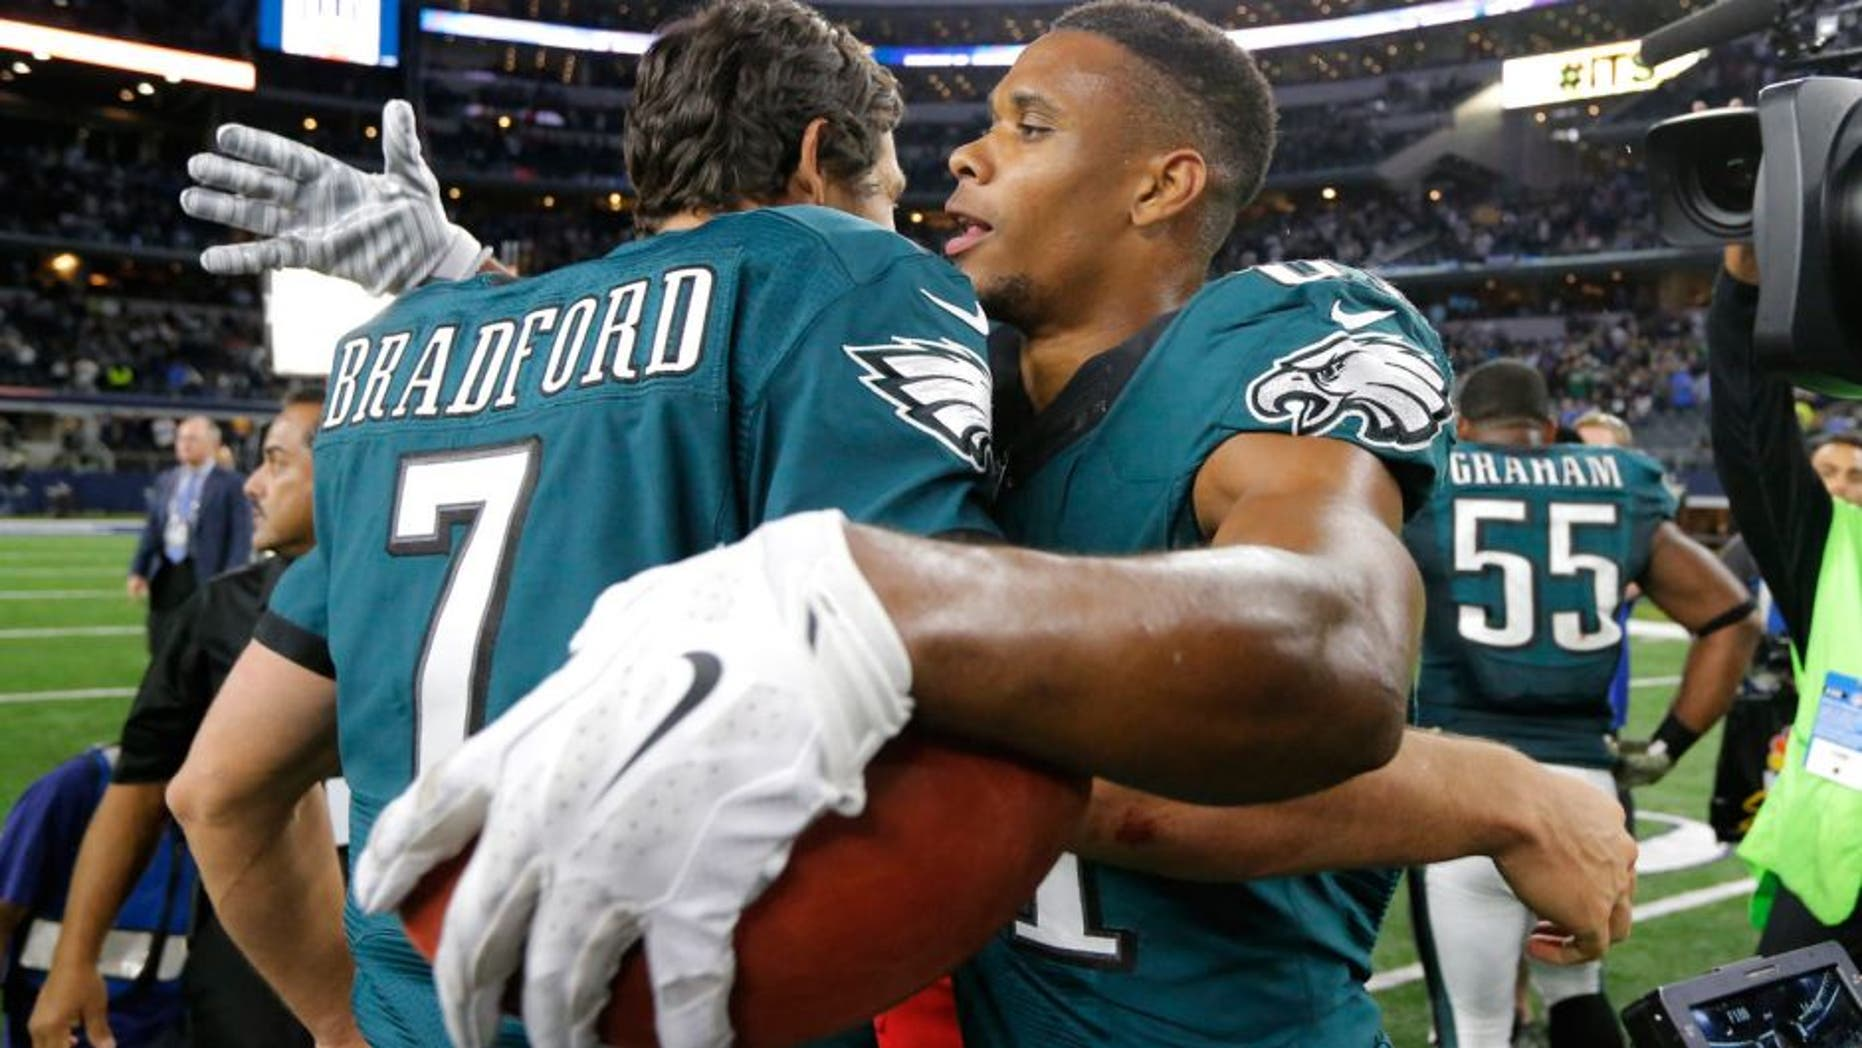 Philadelphia Eagles' Sam Bradford (7) and Jordan Matthews (81) celebrate a touchdown catch made by Matthews in overtime of an NFL football game against the Dallas Cowboys on Sunday, Nov. 8, 2015, in Arlington, Texas. The Eagles won 33-27. (AP Photo/Brandon Wade)